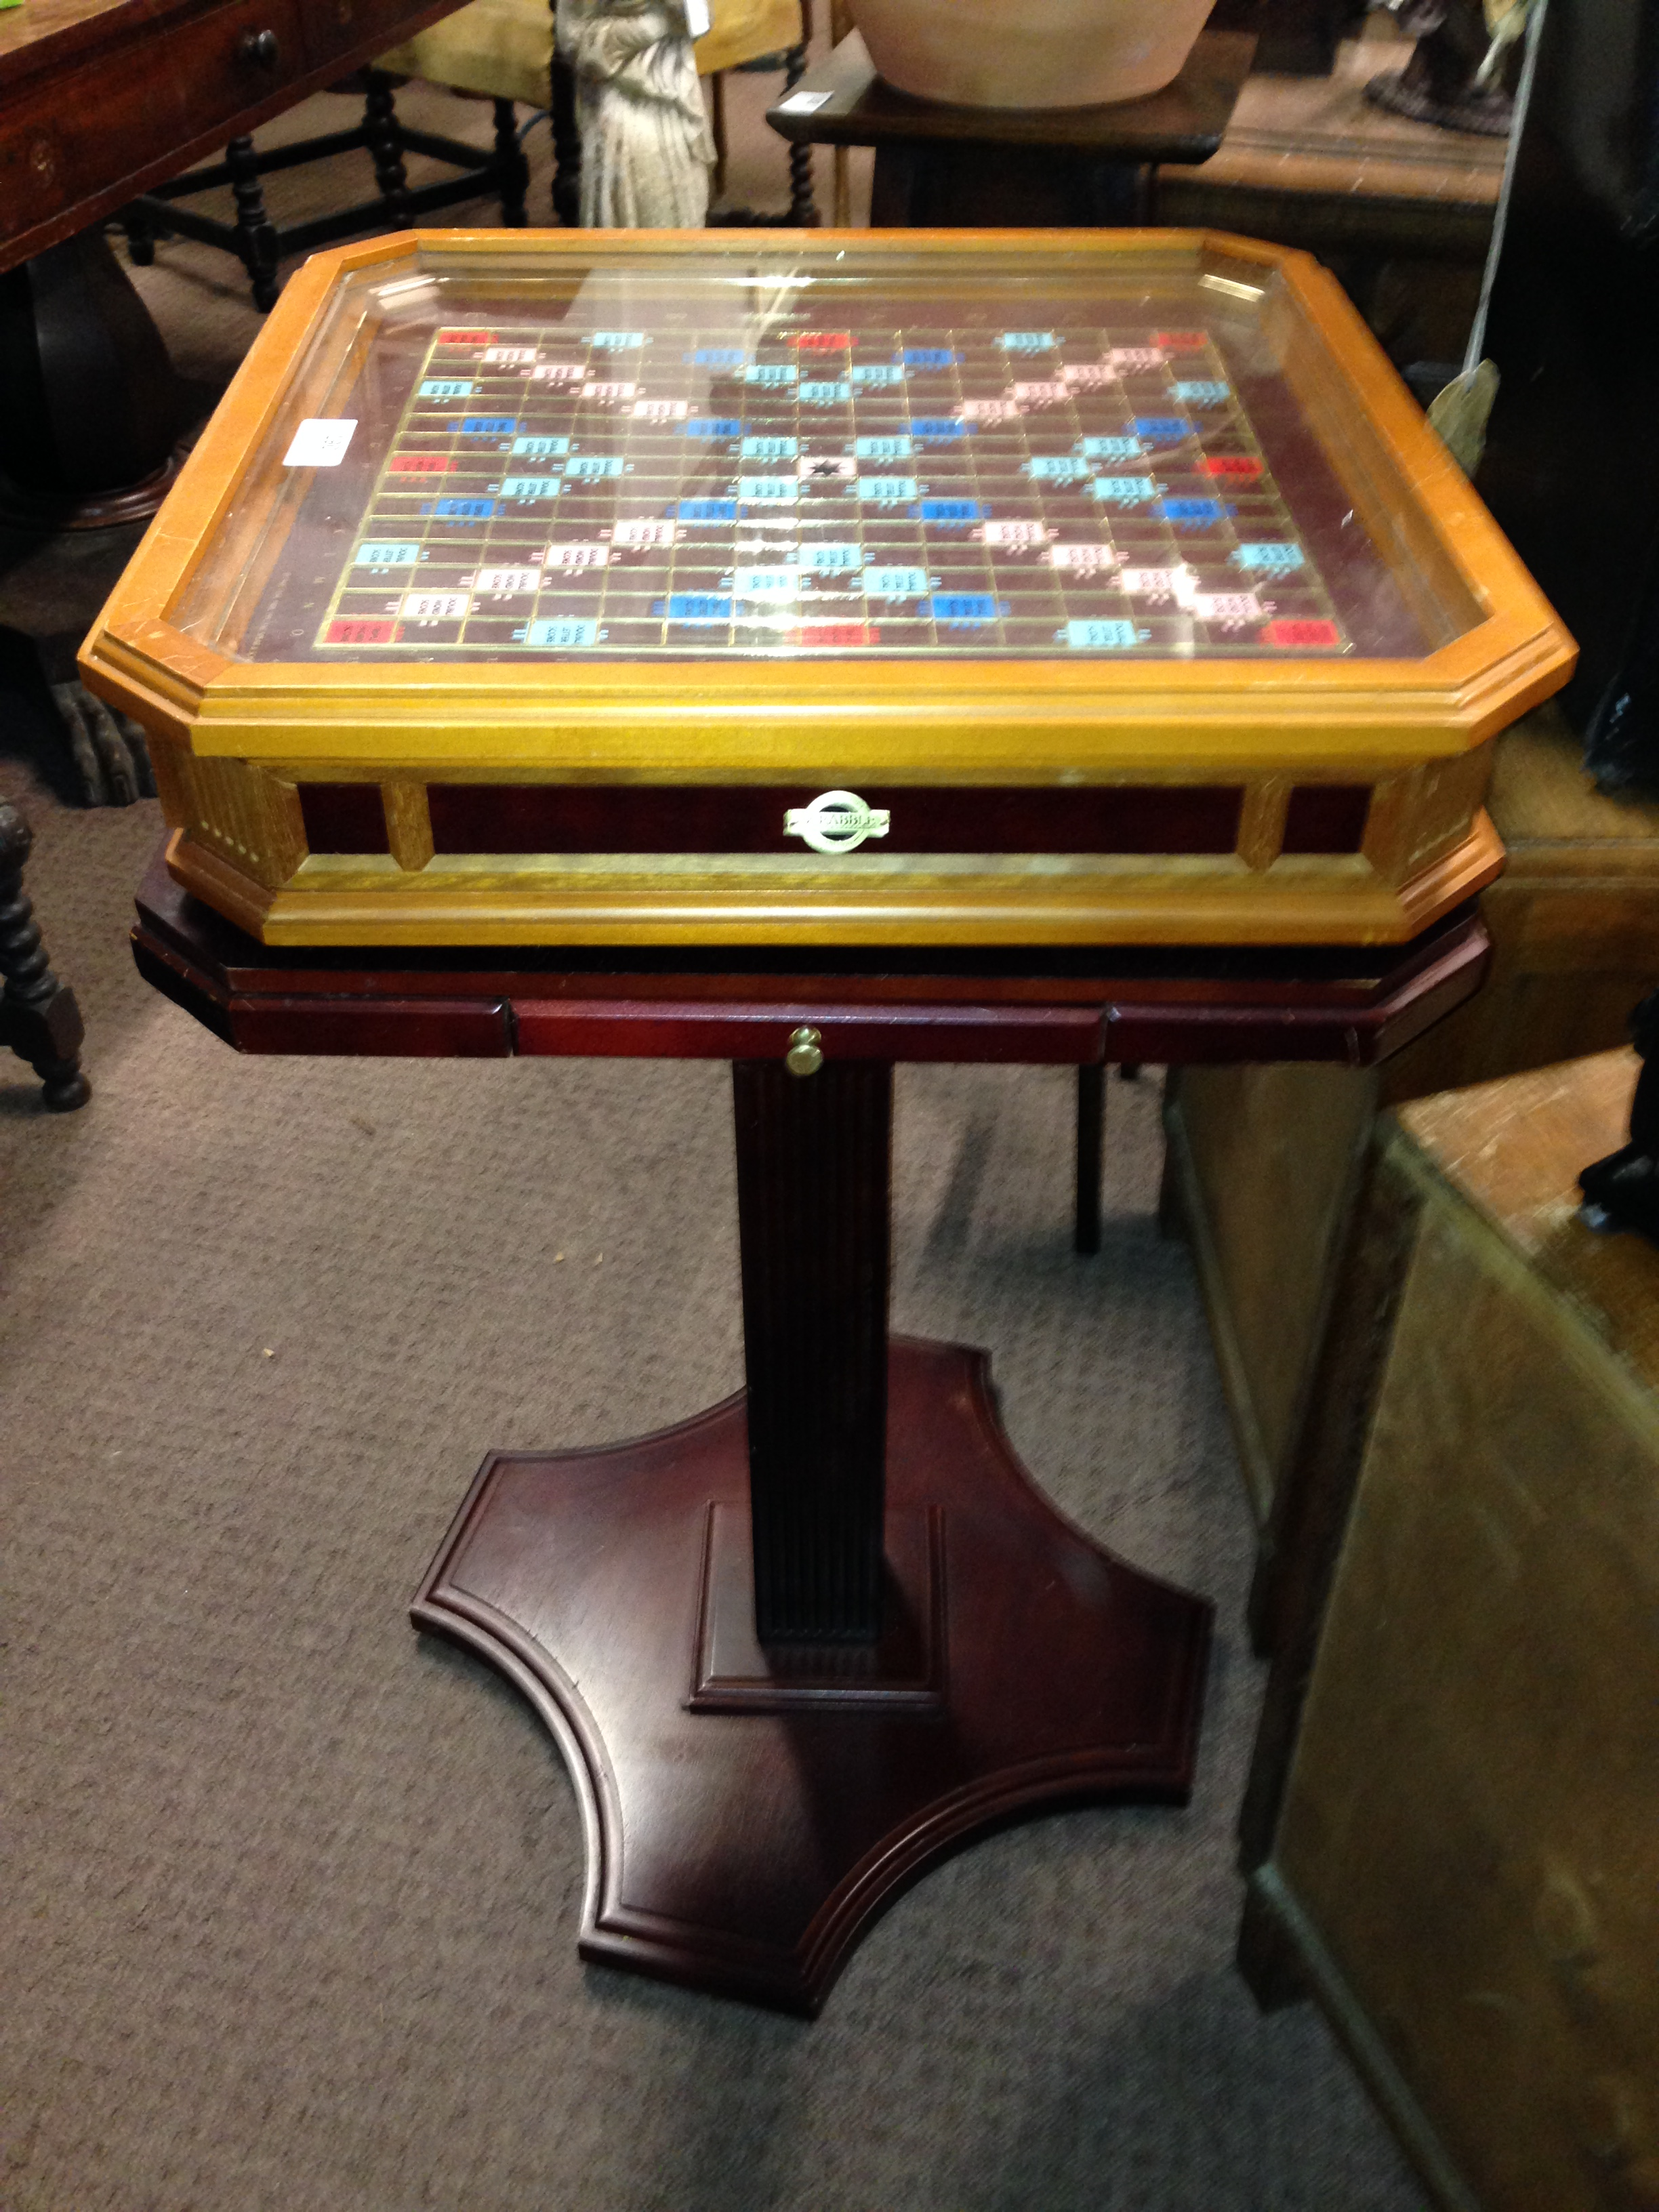 Charmant Lot 190   FRANKLIN MINT Scrabble Table On Stand With Full Set Of Gold  Plated Letters